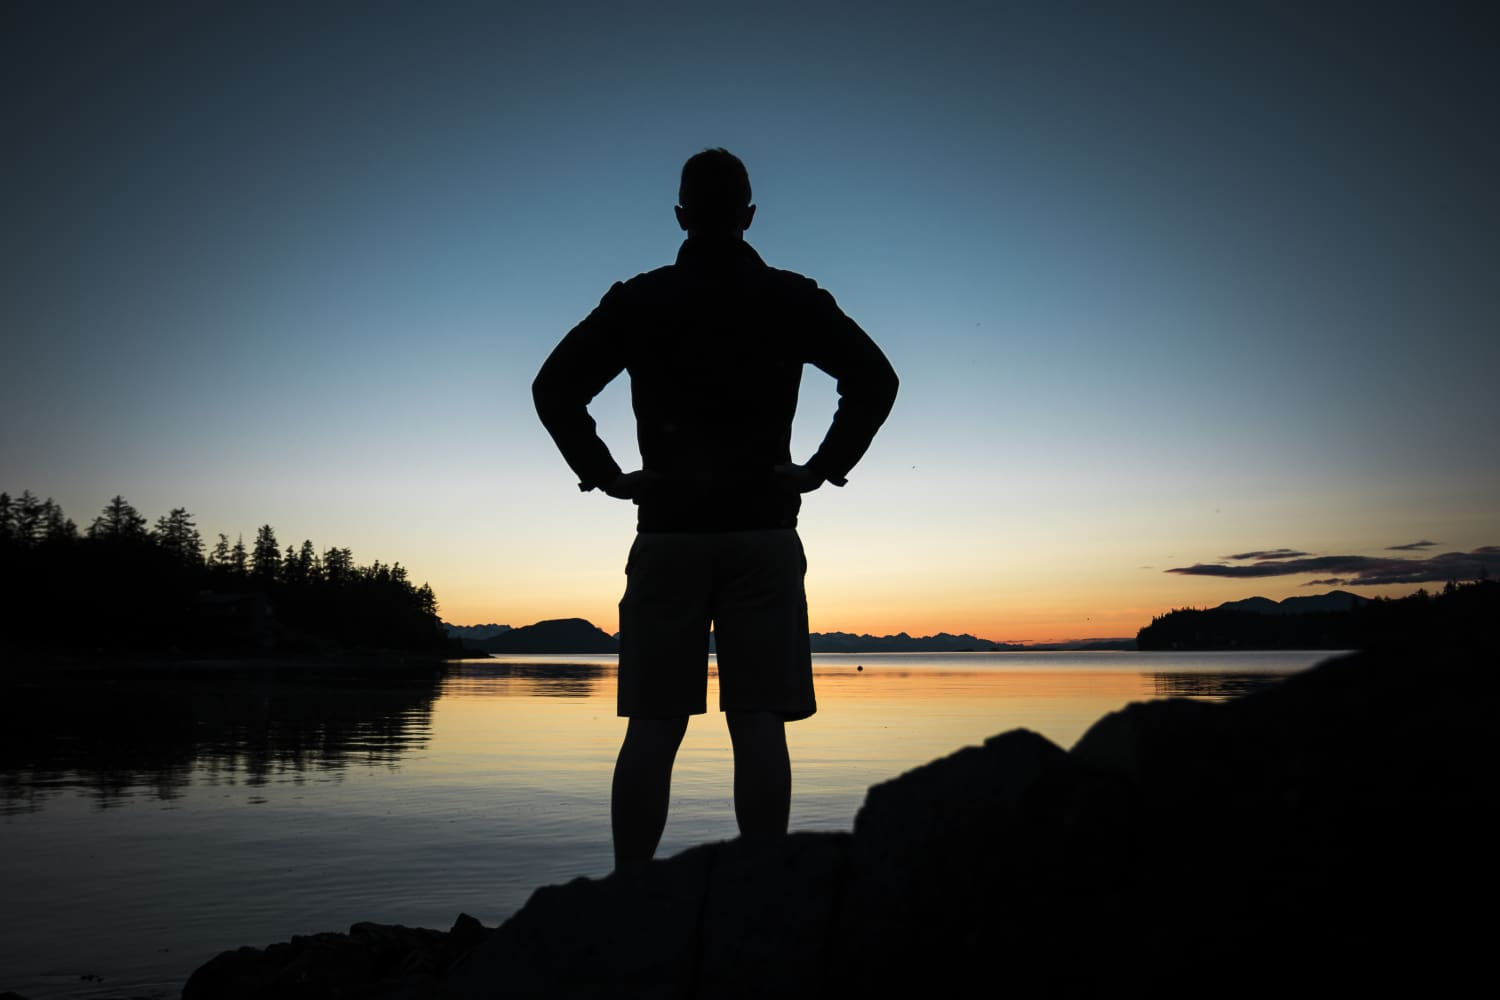 A silhouette of a man at the shore of a lake looking off into the distance at dusk